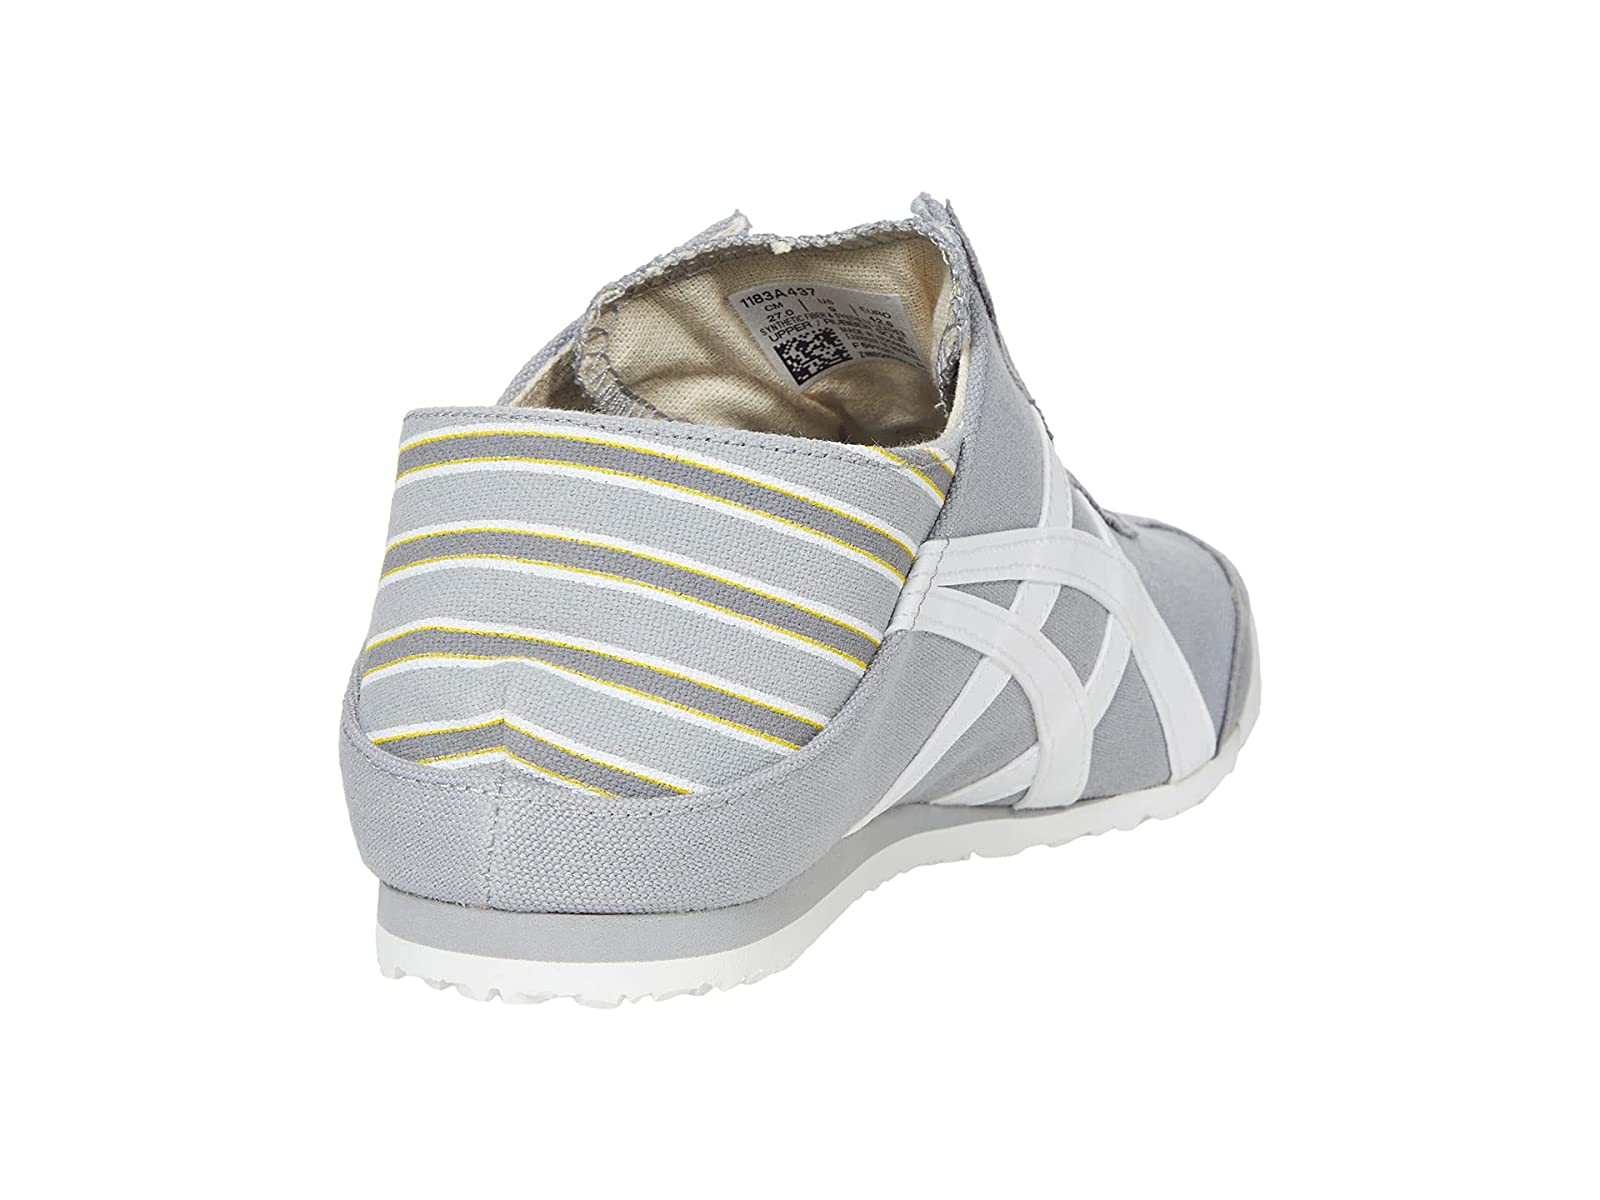 miniature 12 - Adulte Unisexe Baskets & Athlétique Chaussures Onitsuka Tiger Mexico 66 Paraty